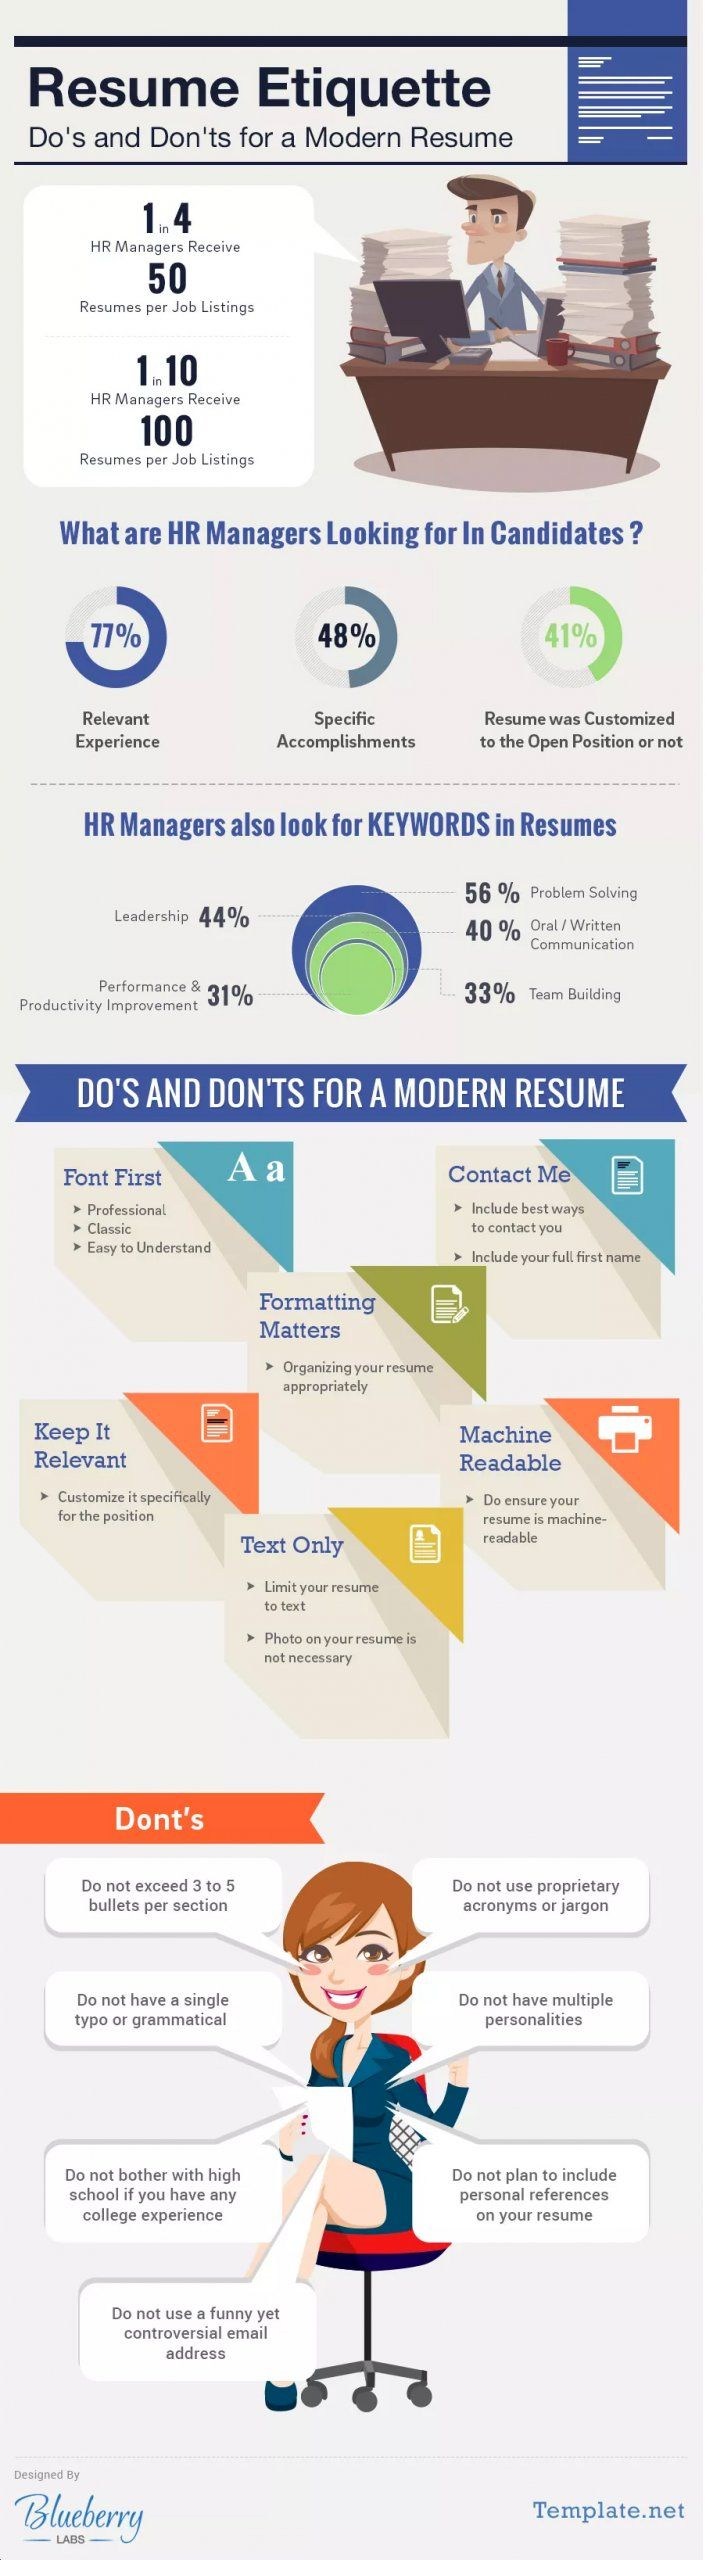 heres what the modern resume should look like i love that they pointed out using